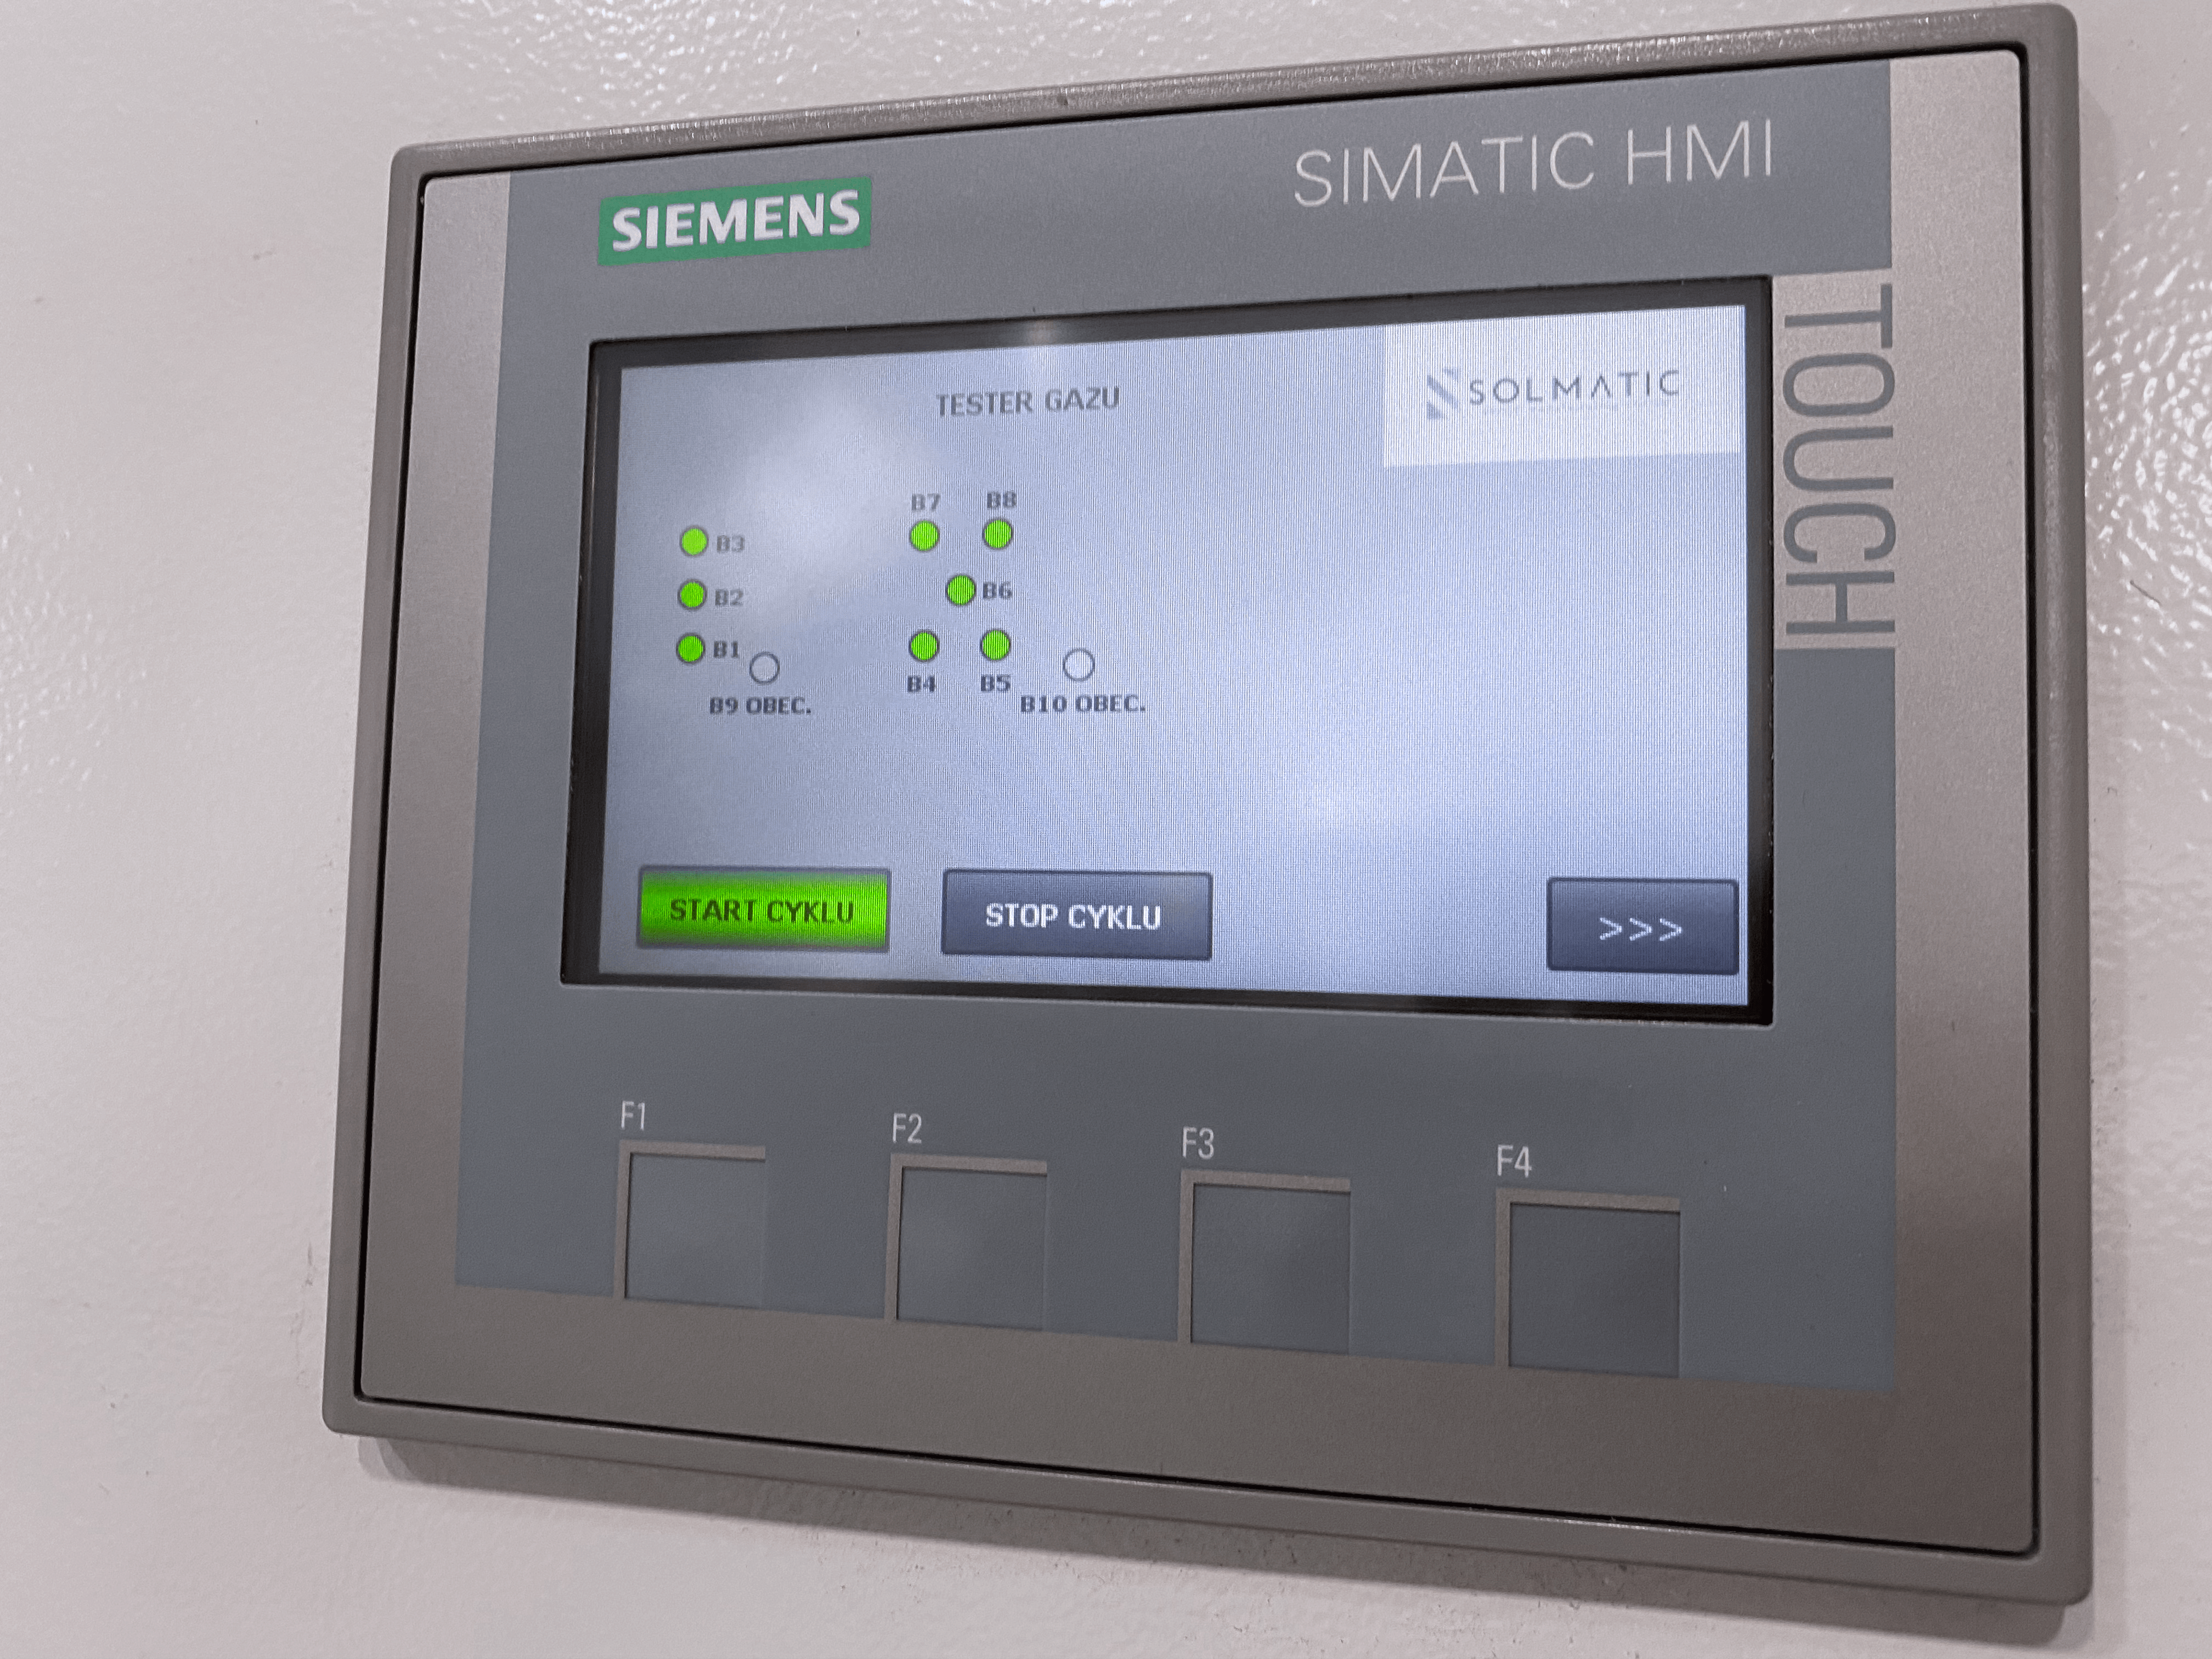 Dedicated systems for safety testing